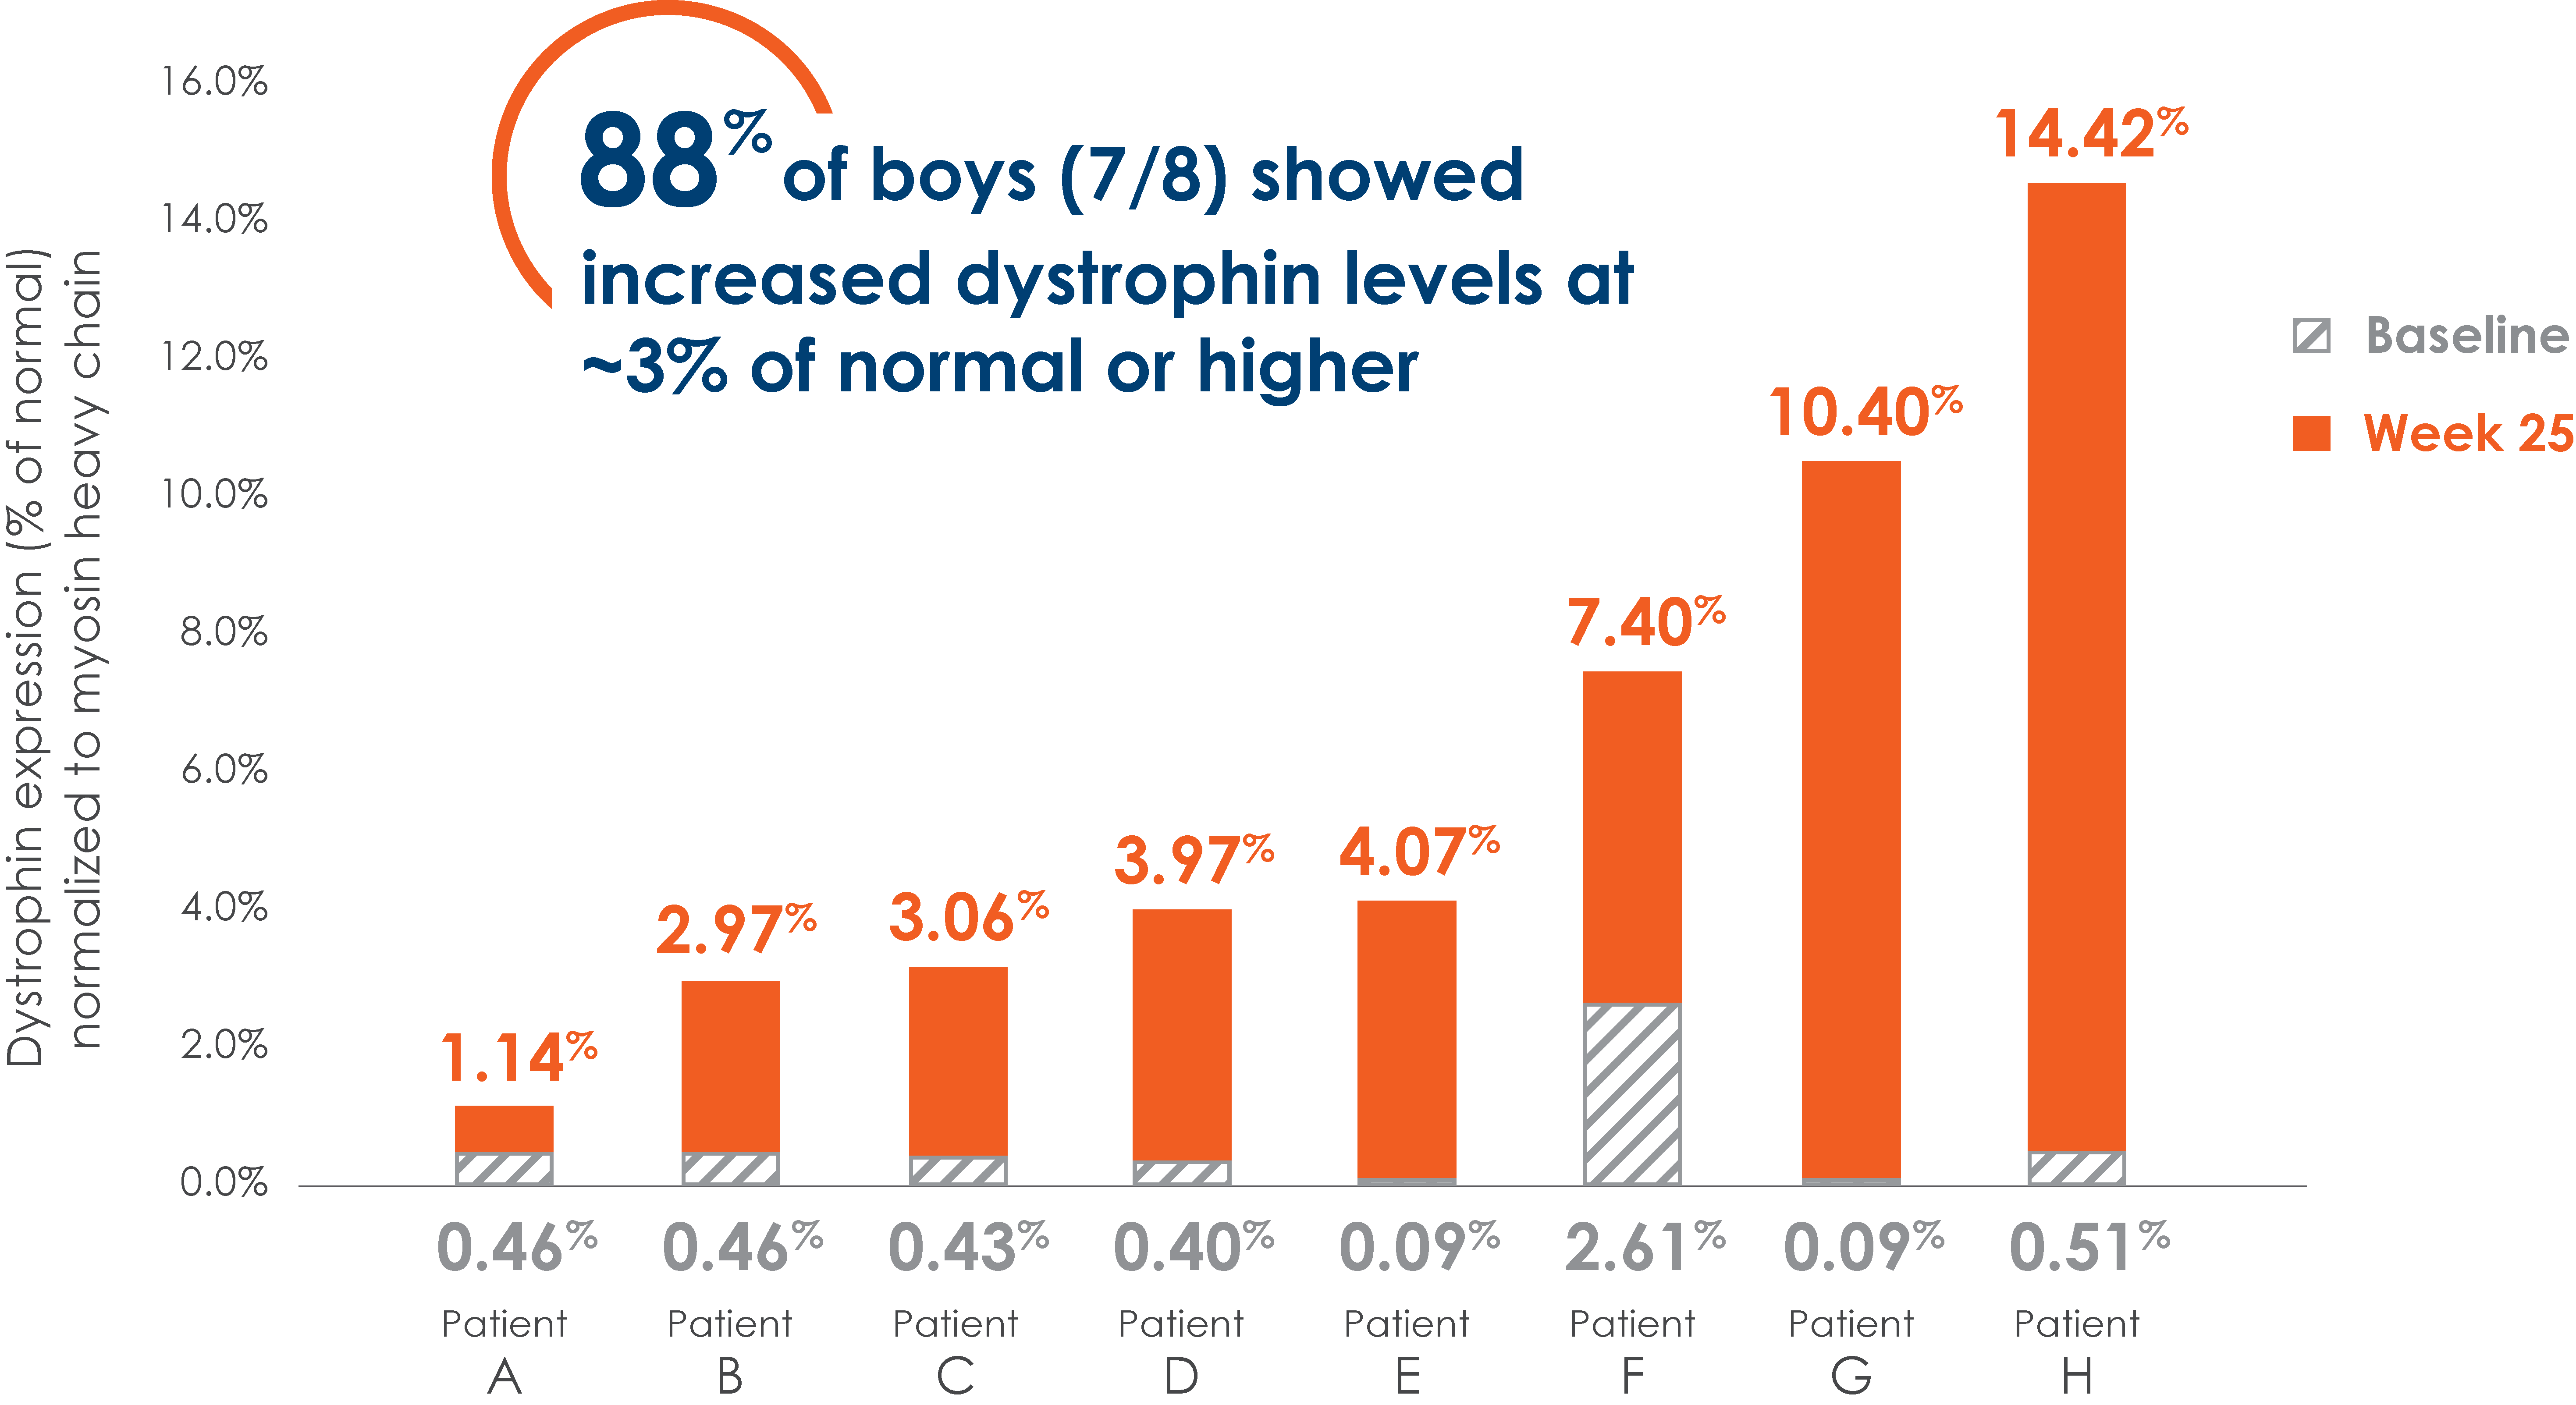 Increased Dystrophin Graph 2